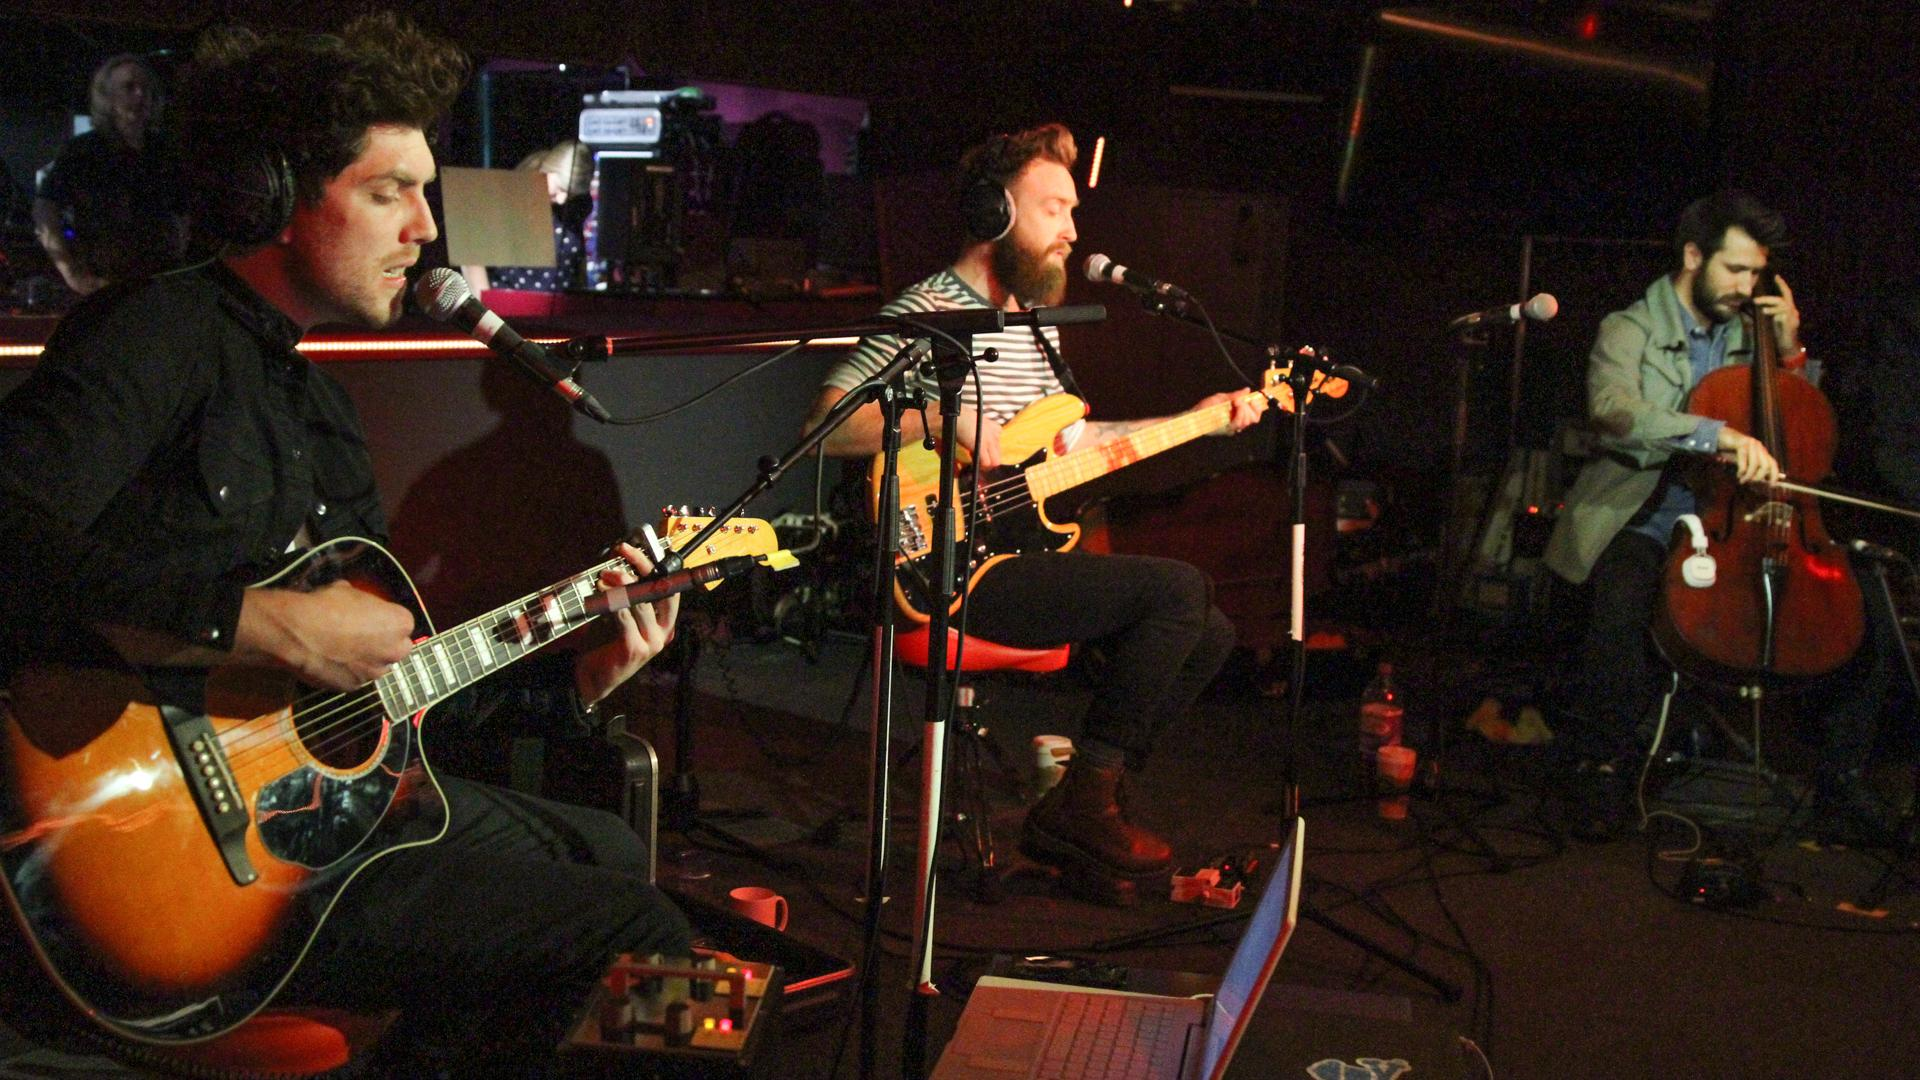 RT @BBCR1: It's happening! @twinatlantic are in the #R1LiveLounge RIGHT NOW! Watch live http://t.co/48RuyAdWRo http://t.co/1JlbhspMKT